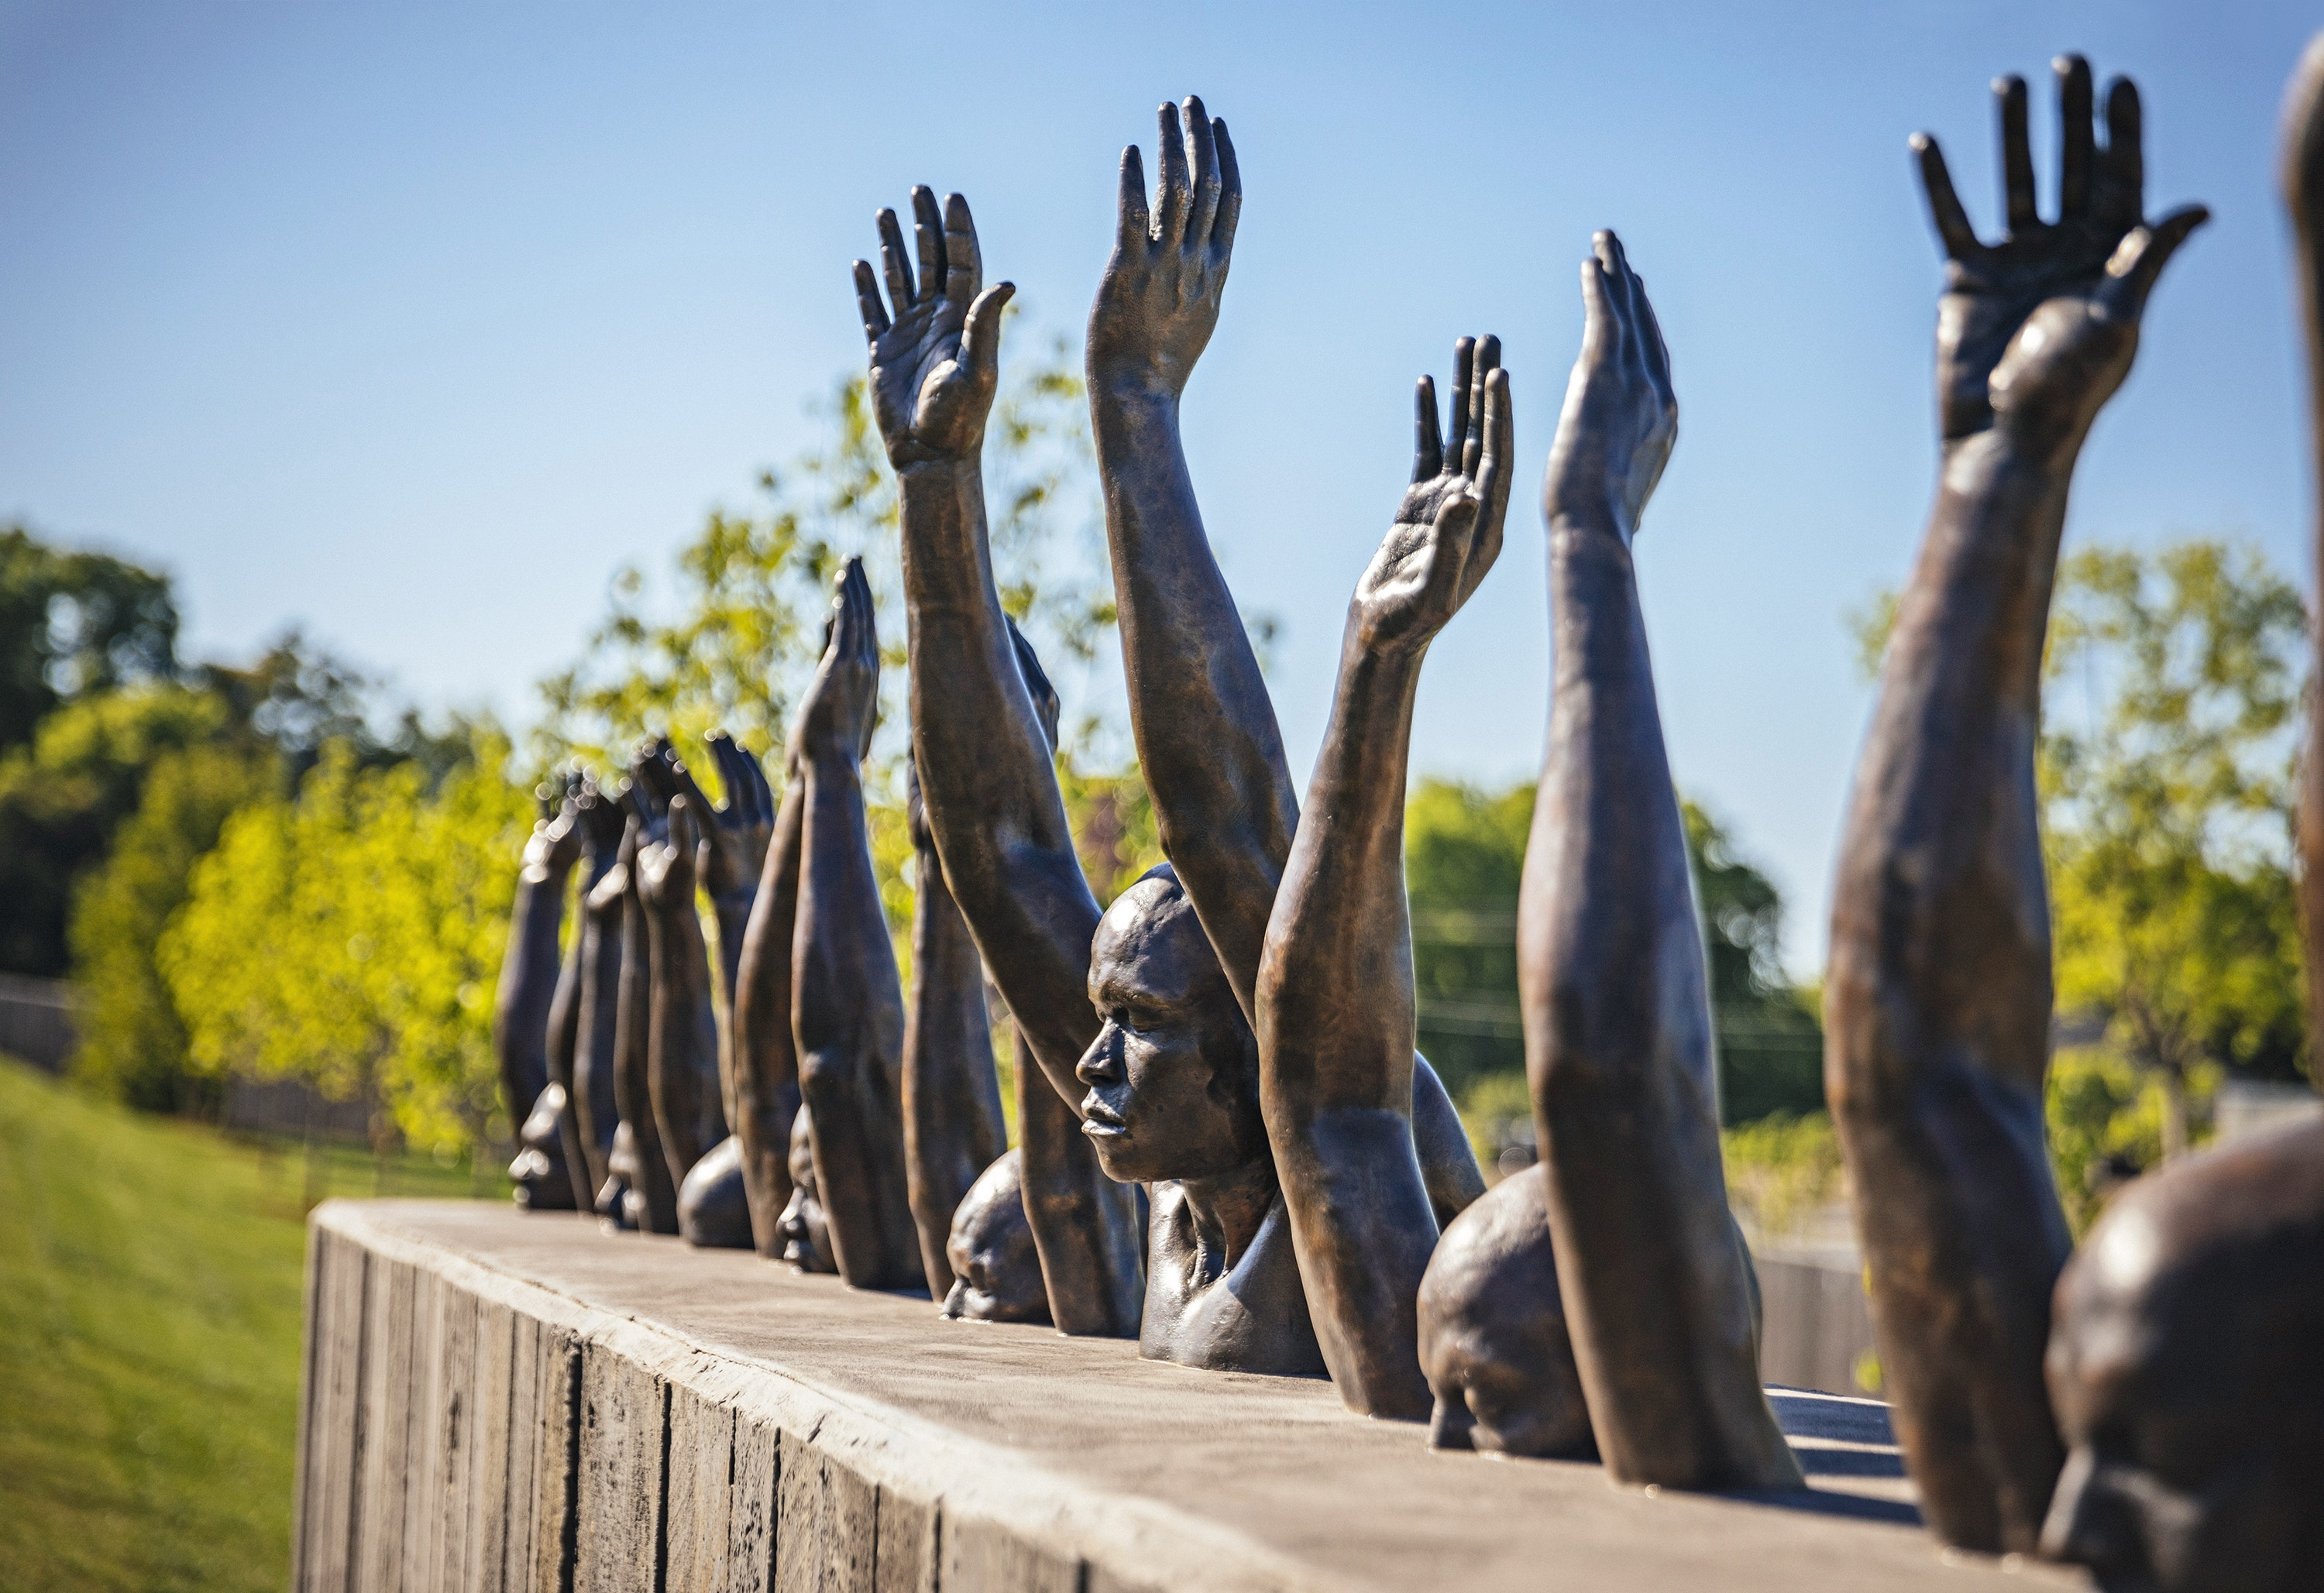 A sculpture by Hank Willis Thomas addresses contemporary problems of police violence.